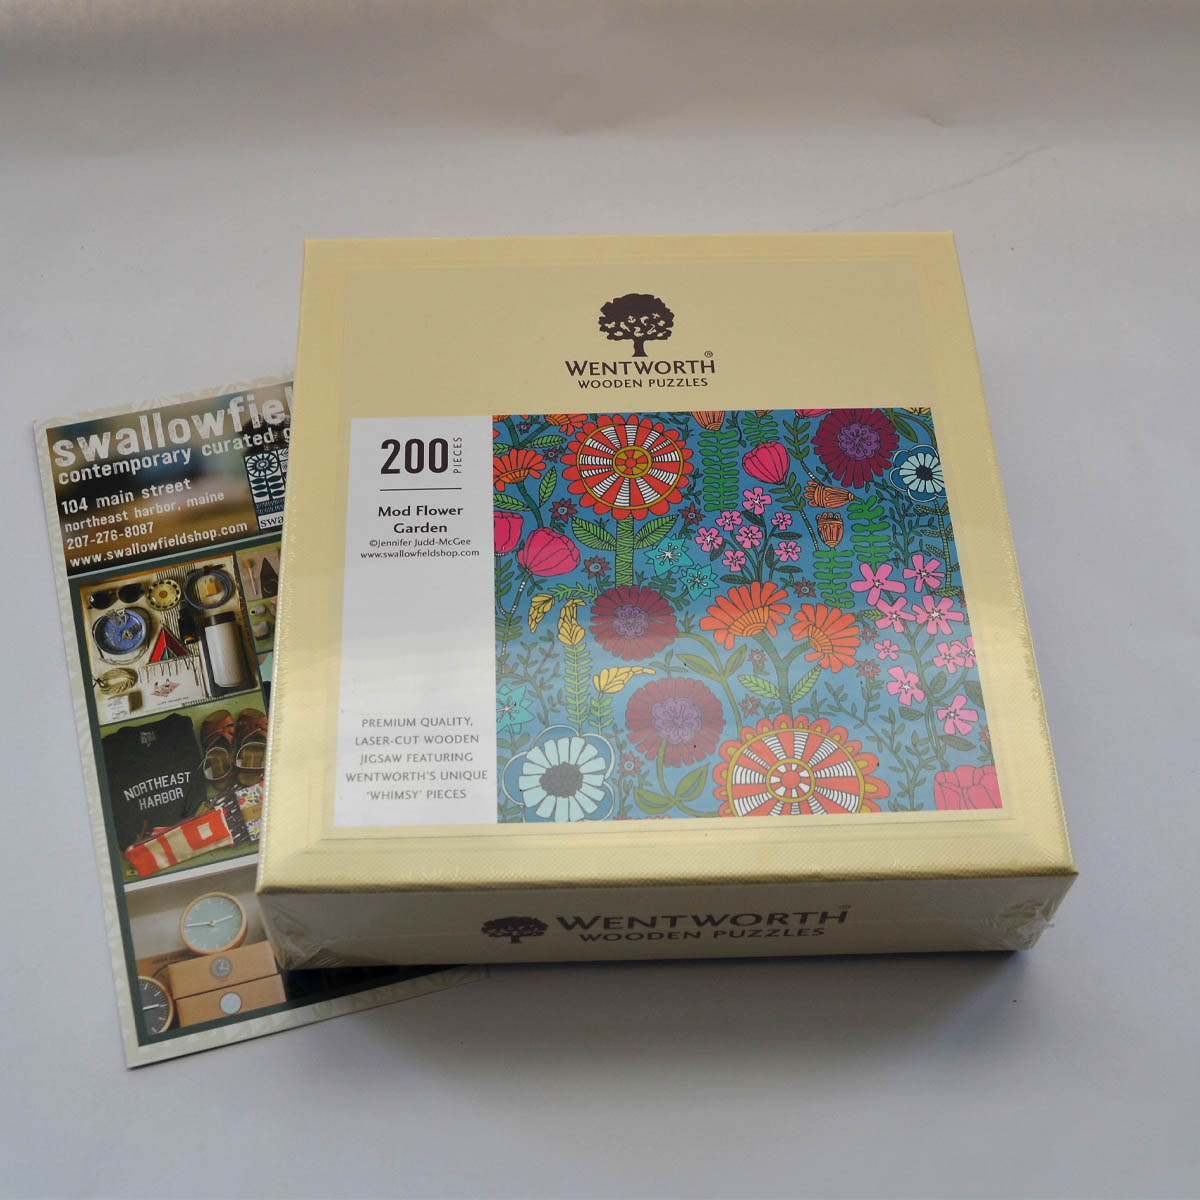 "Wooden Puzzle - Artist and proprietor of Swallowfield, Jennifer Judd-McGee not provided her artwork for this puzzle to be created, but she also generously contributed a copy to our auction as well! This 200 piece wooden ""Mod Flower Garden"" puzzle is the perfect group activity whether it's on a rainy day or just a little bit at a time over the course of the summer. You can catch more fun items like this at her Main St. shop or even shop online!"